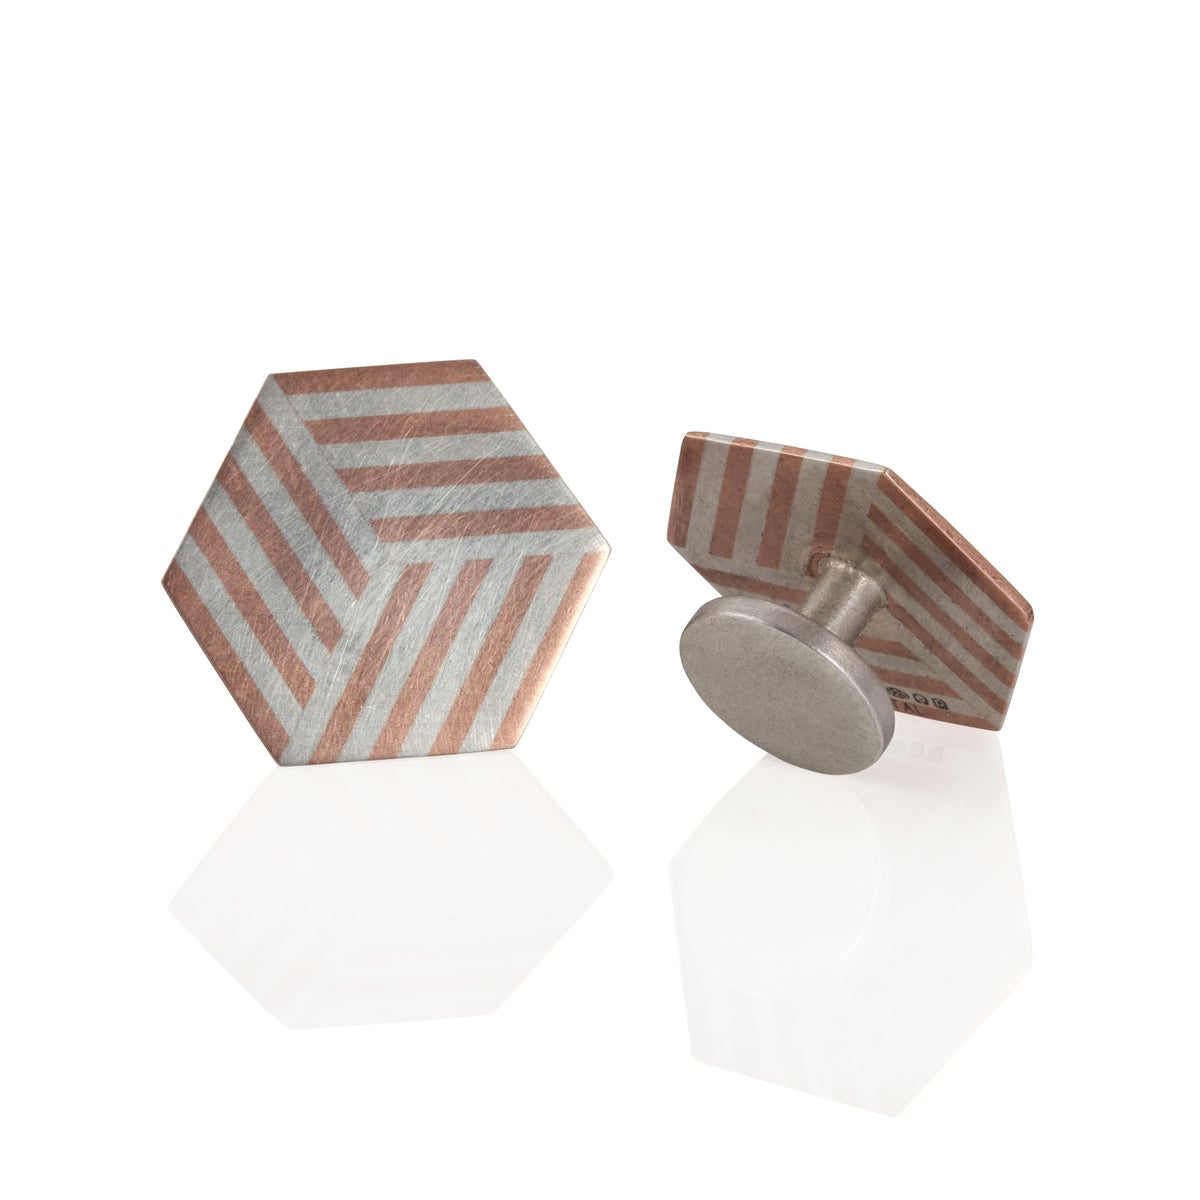 Image of Cufflinks 'Ply / Hexagon'